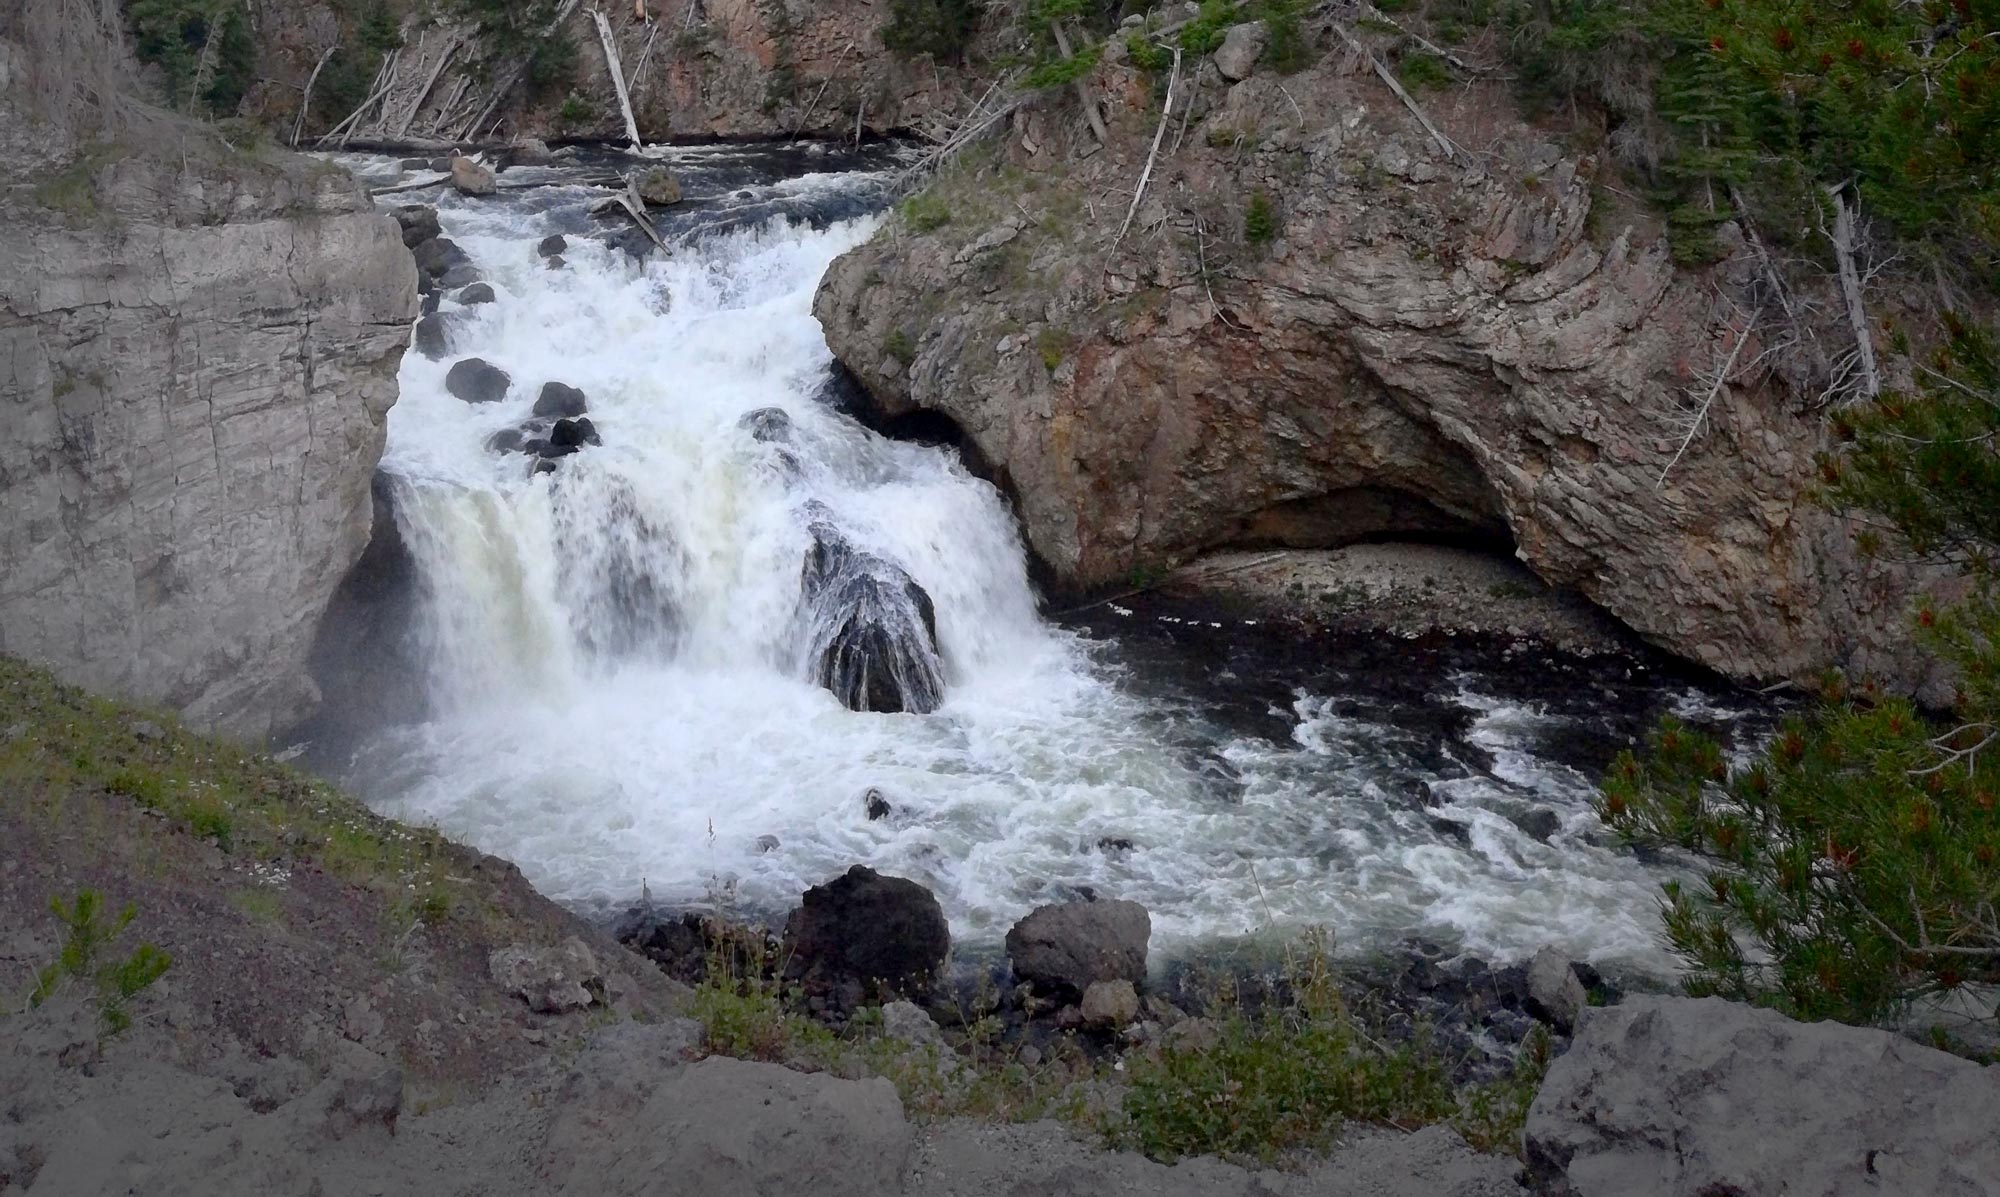 Firehole Canyon in Yellowstone National Park